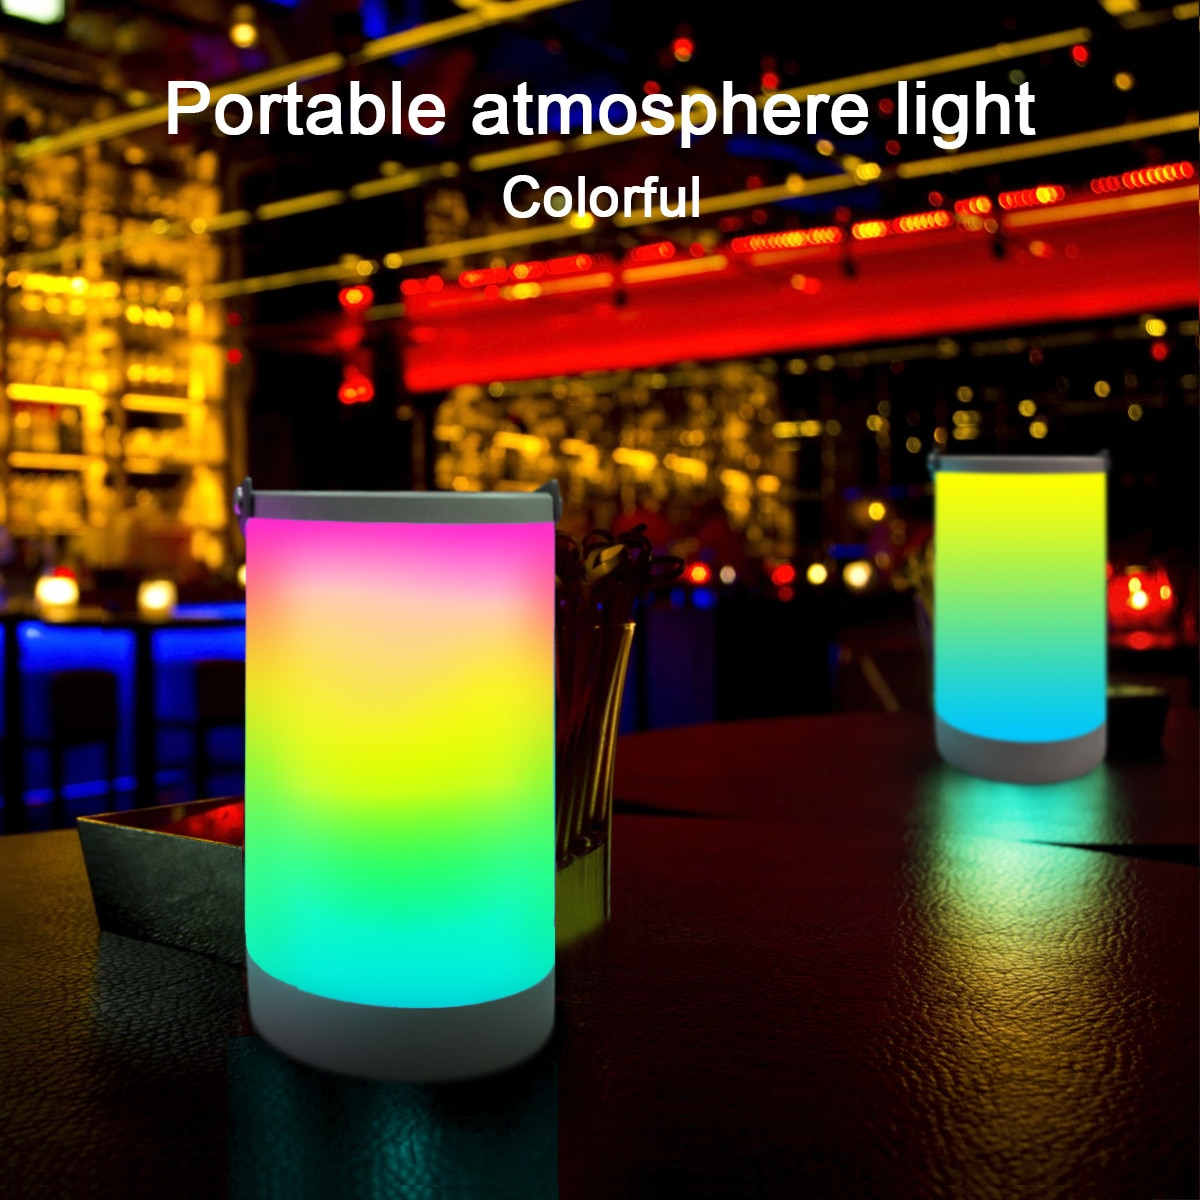 LED Portable Atmosphere Lamp Colorful Battery Warm White Lamp Camping for Cafe Restaurant Exquisite Ornaments